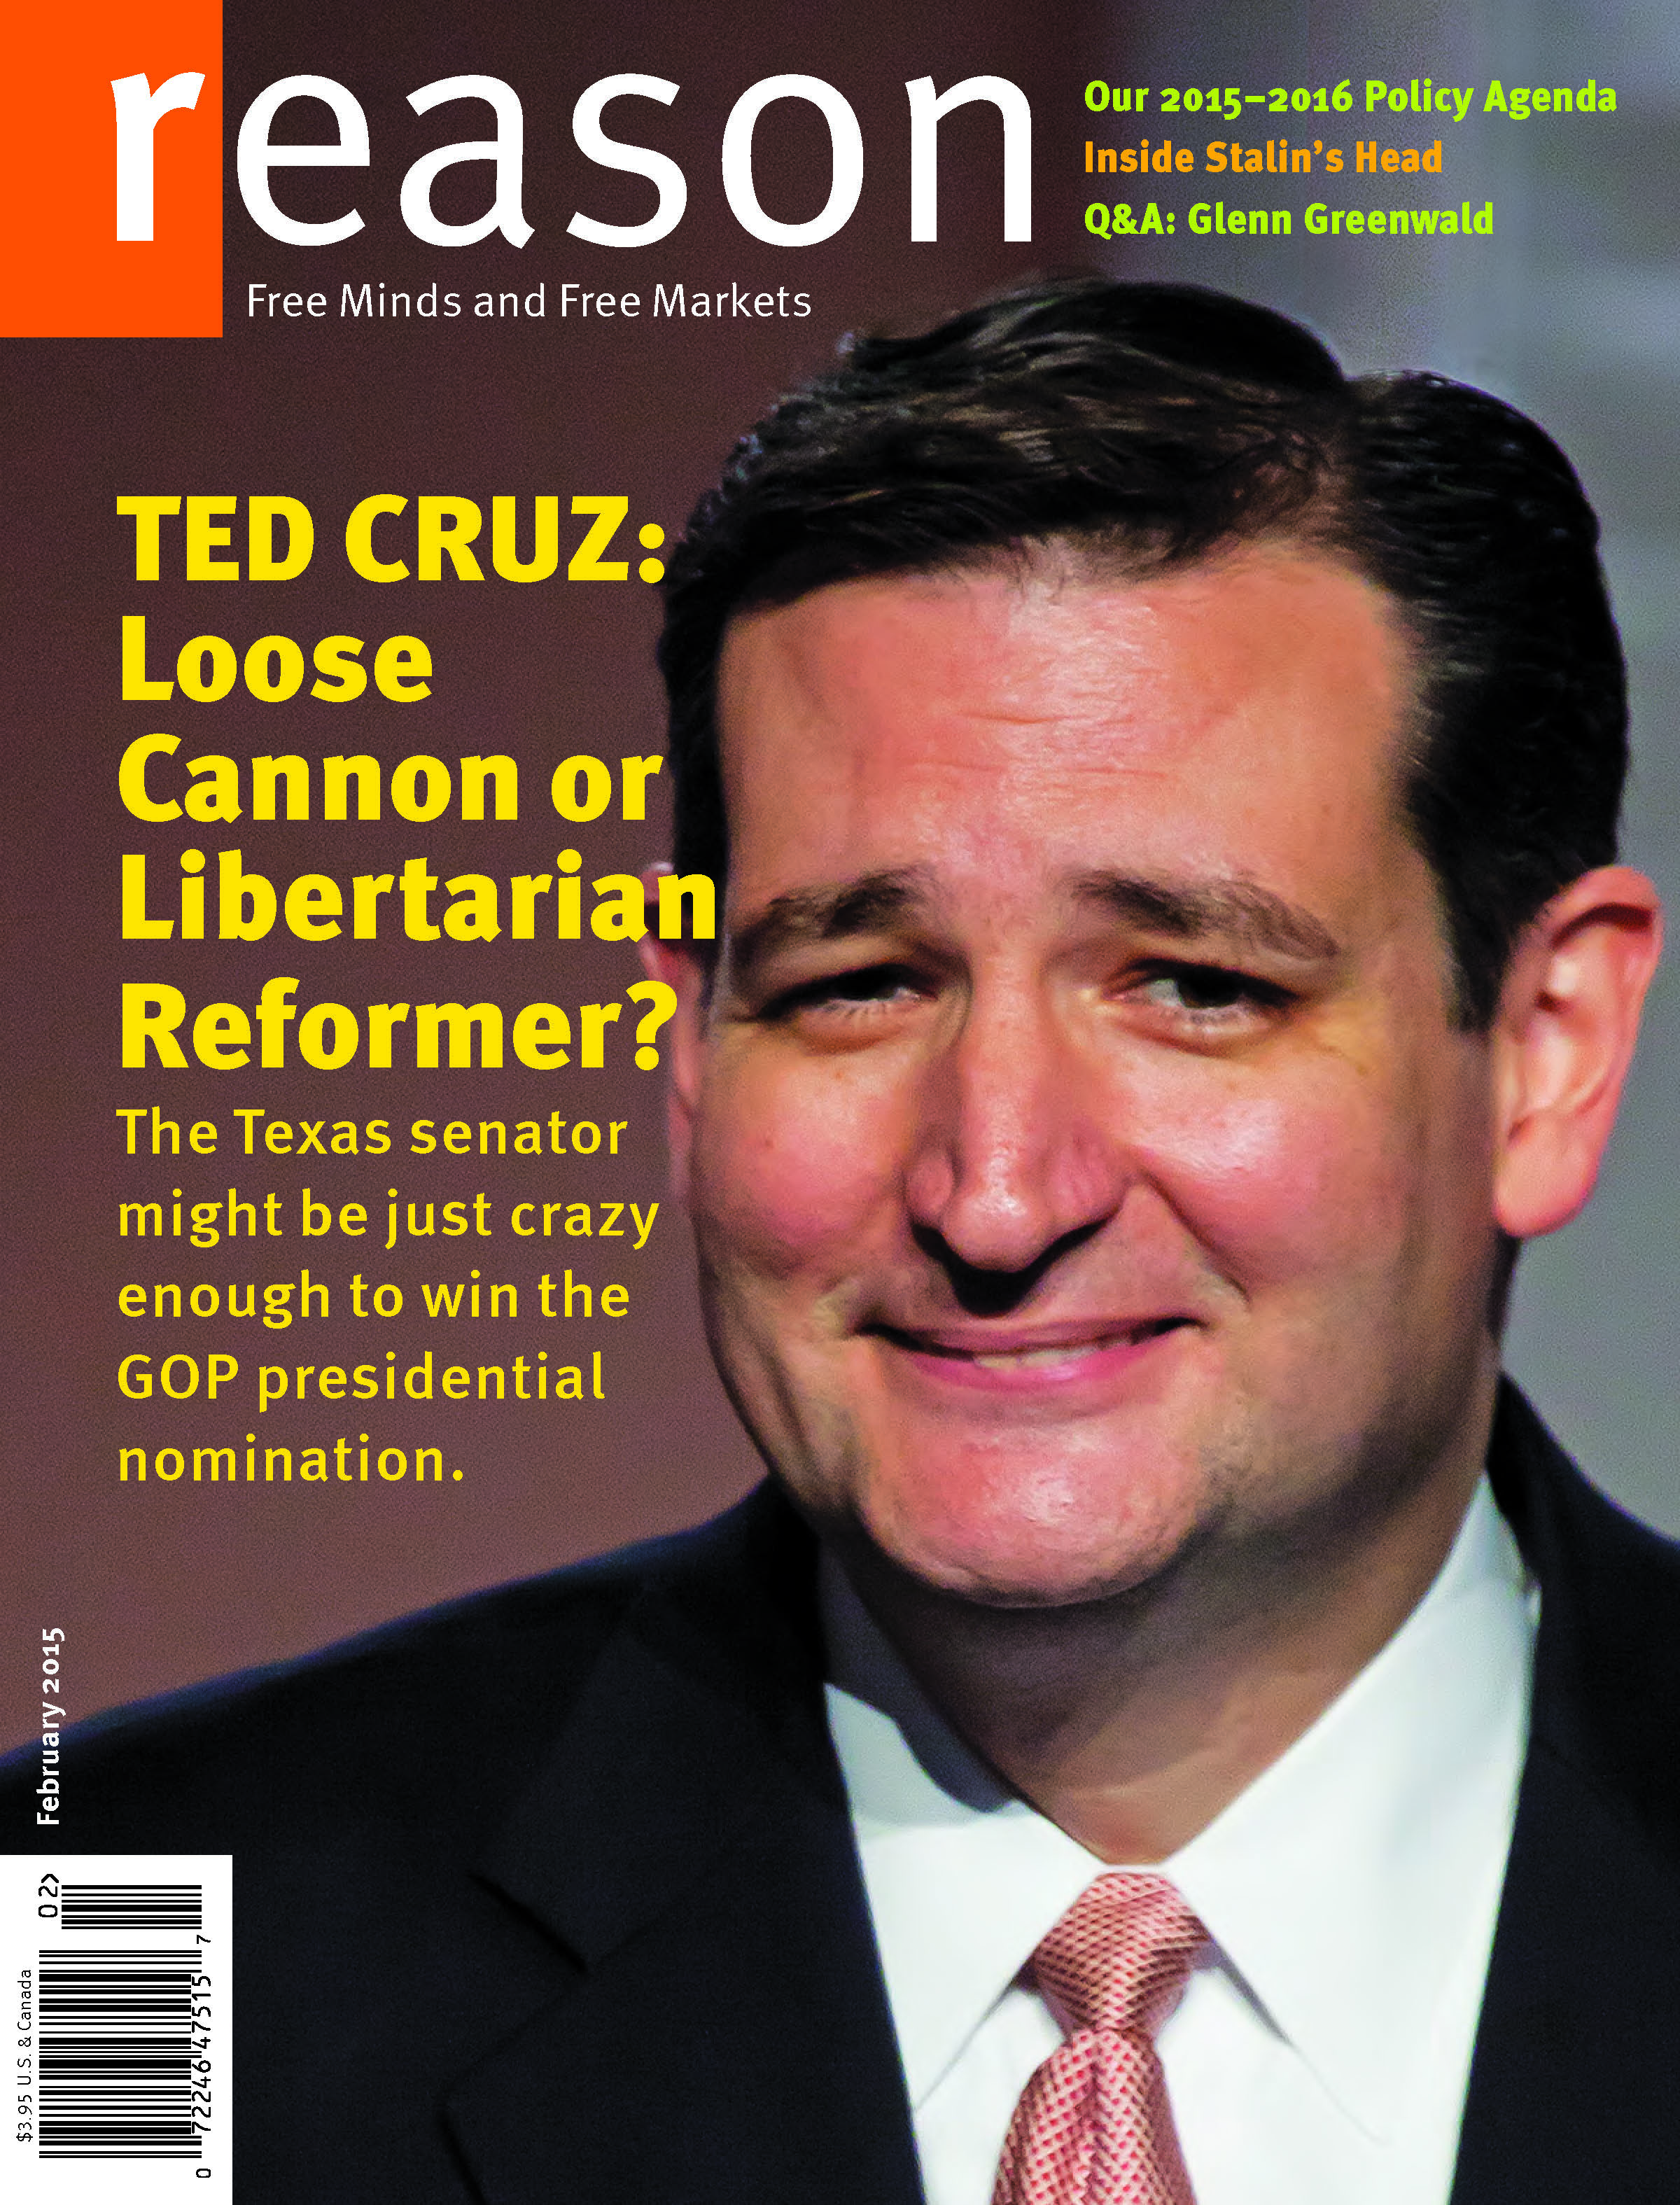 Reason Magazine, February 2015 cover image